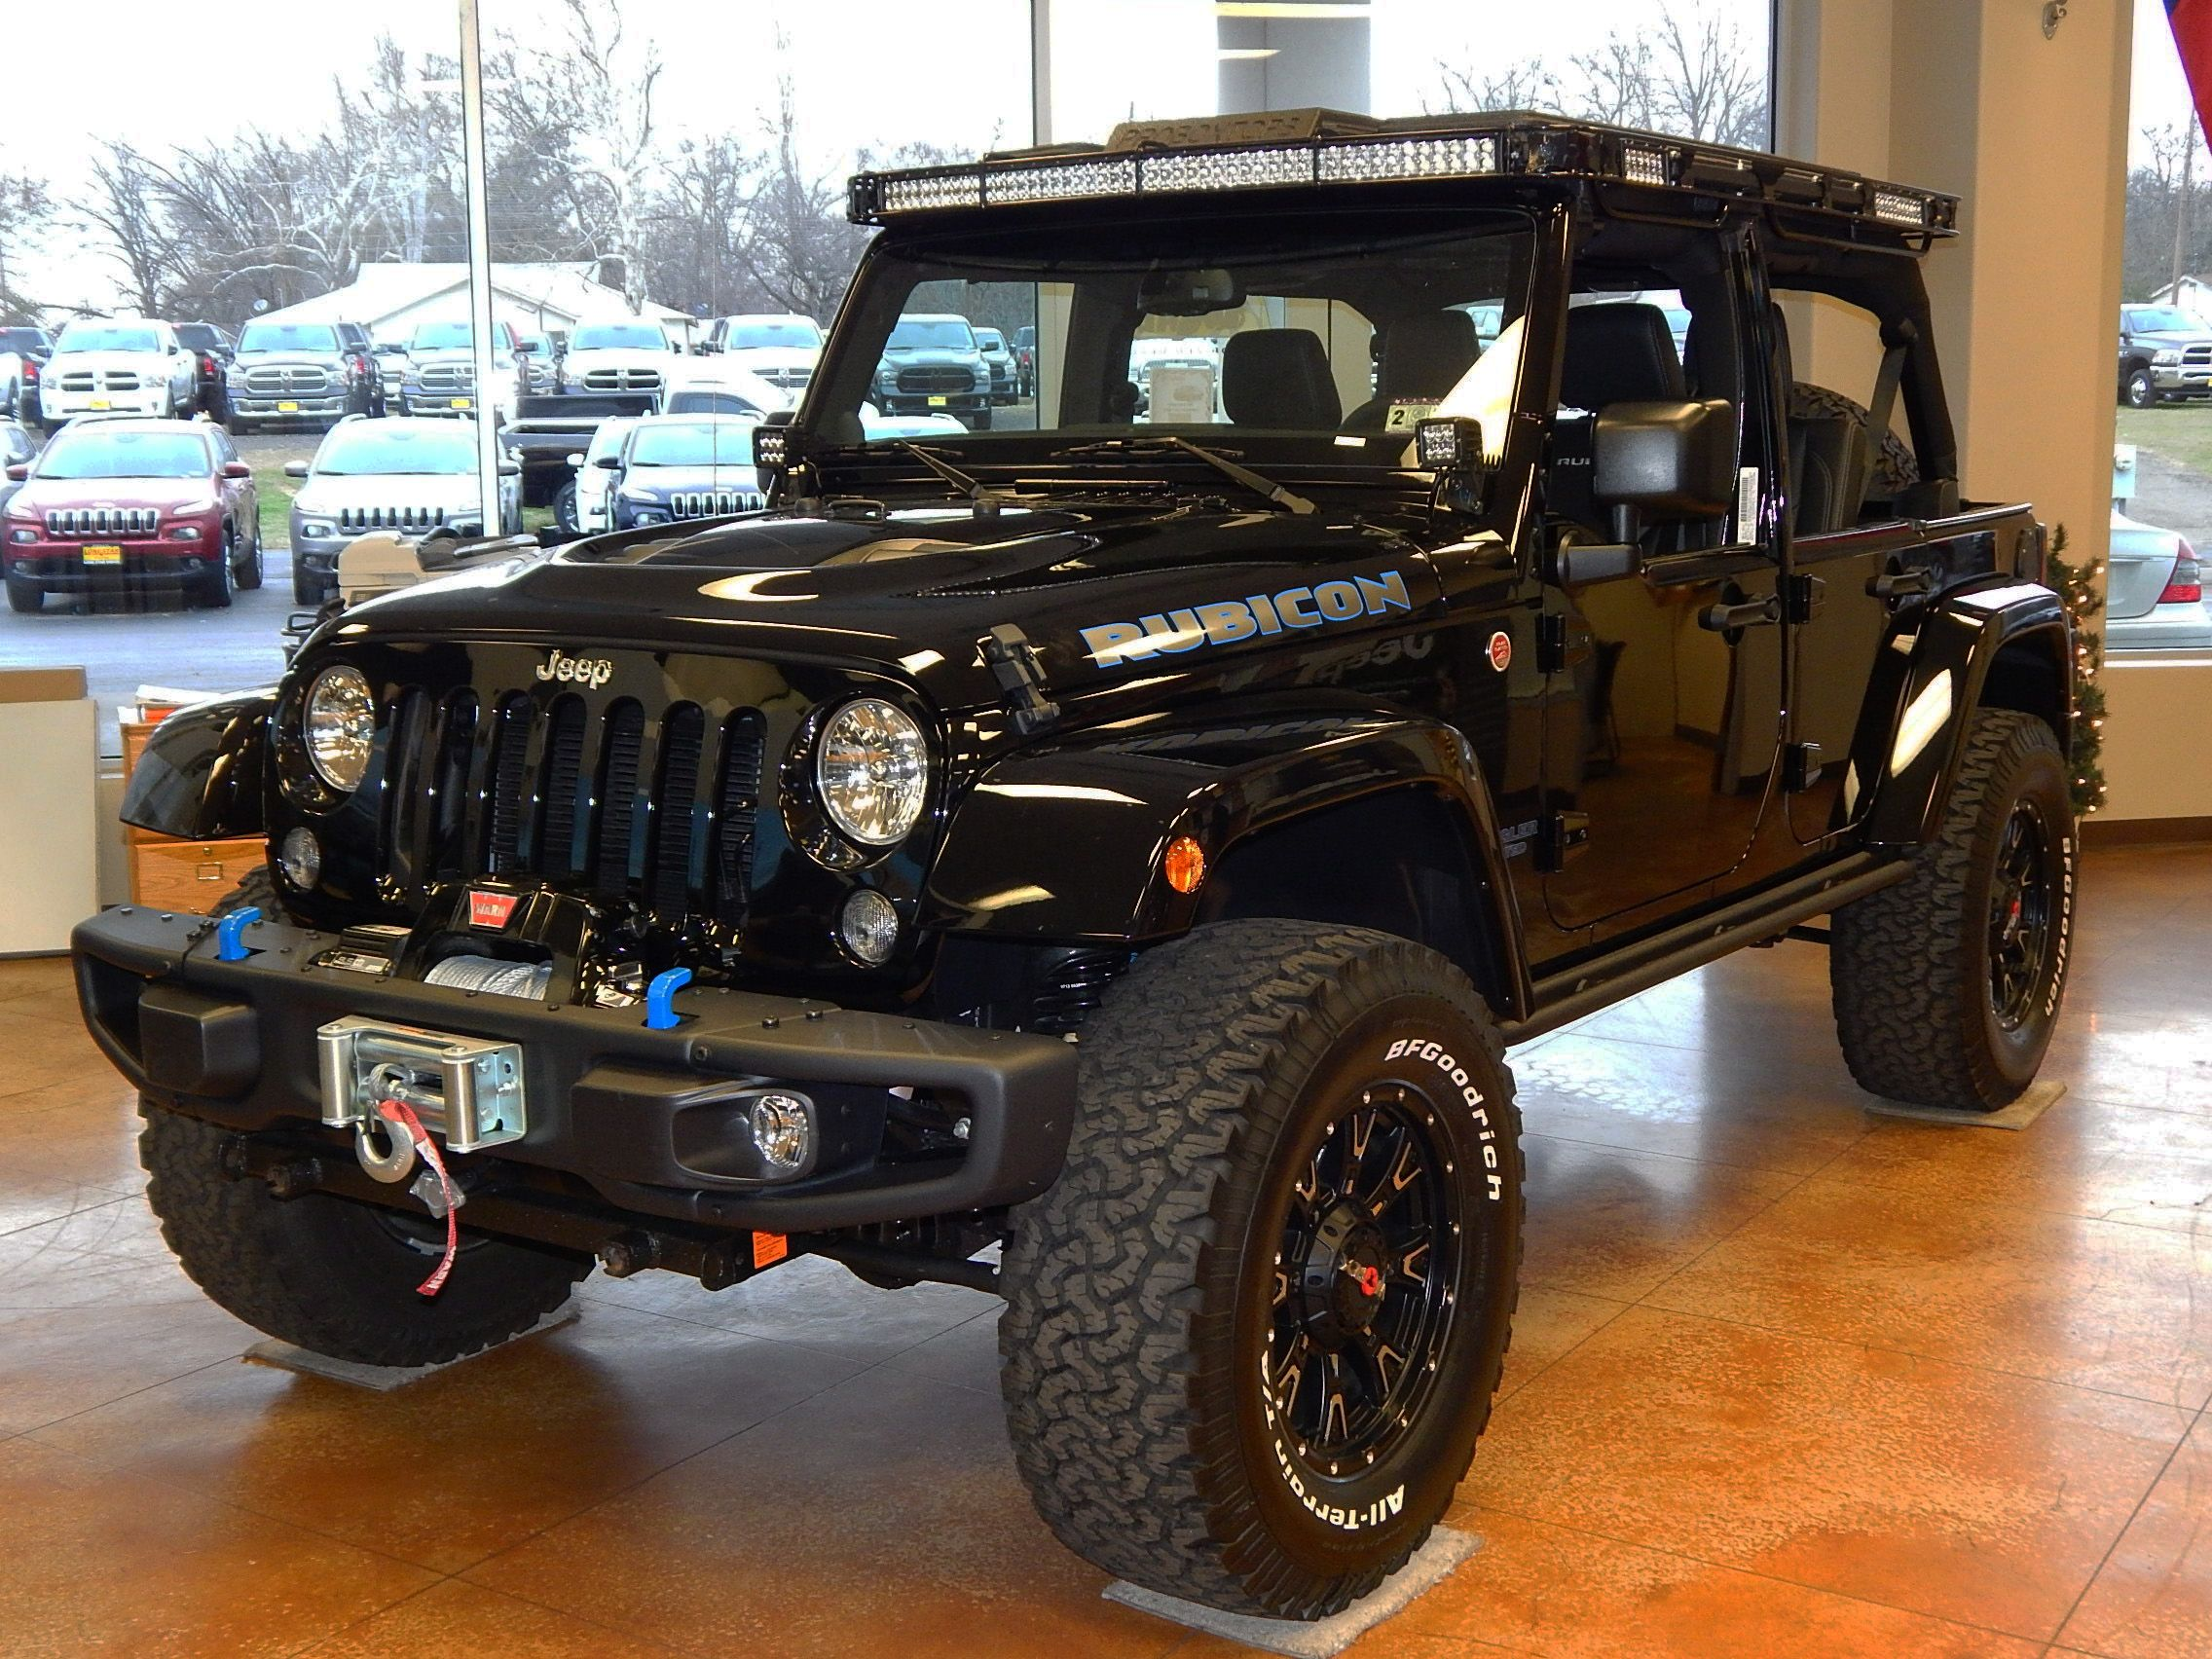 Custom 2014 Jeep Wrangler Unlimited Rubicon X This One Is Ready To Roll Jeeprubicon Jeep Jeep Wrangler Unlimited Rubicon Chrysler Dodge Jeep